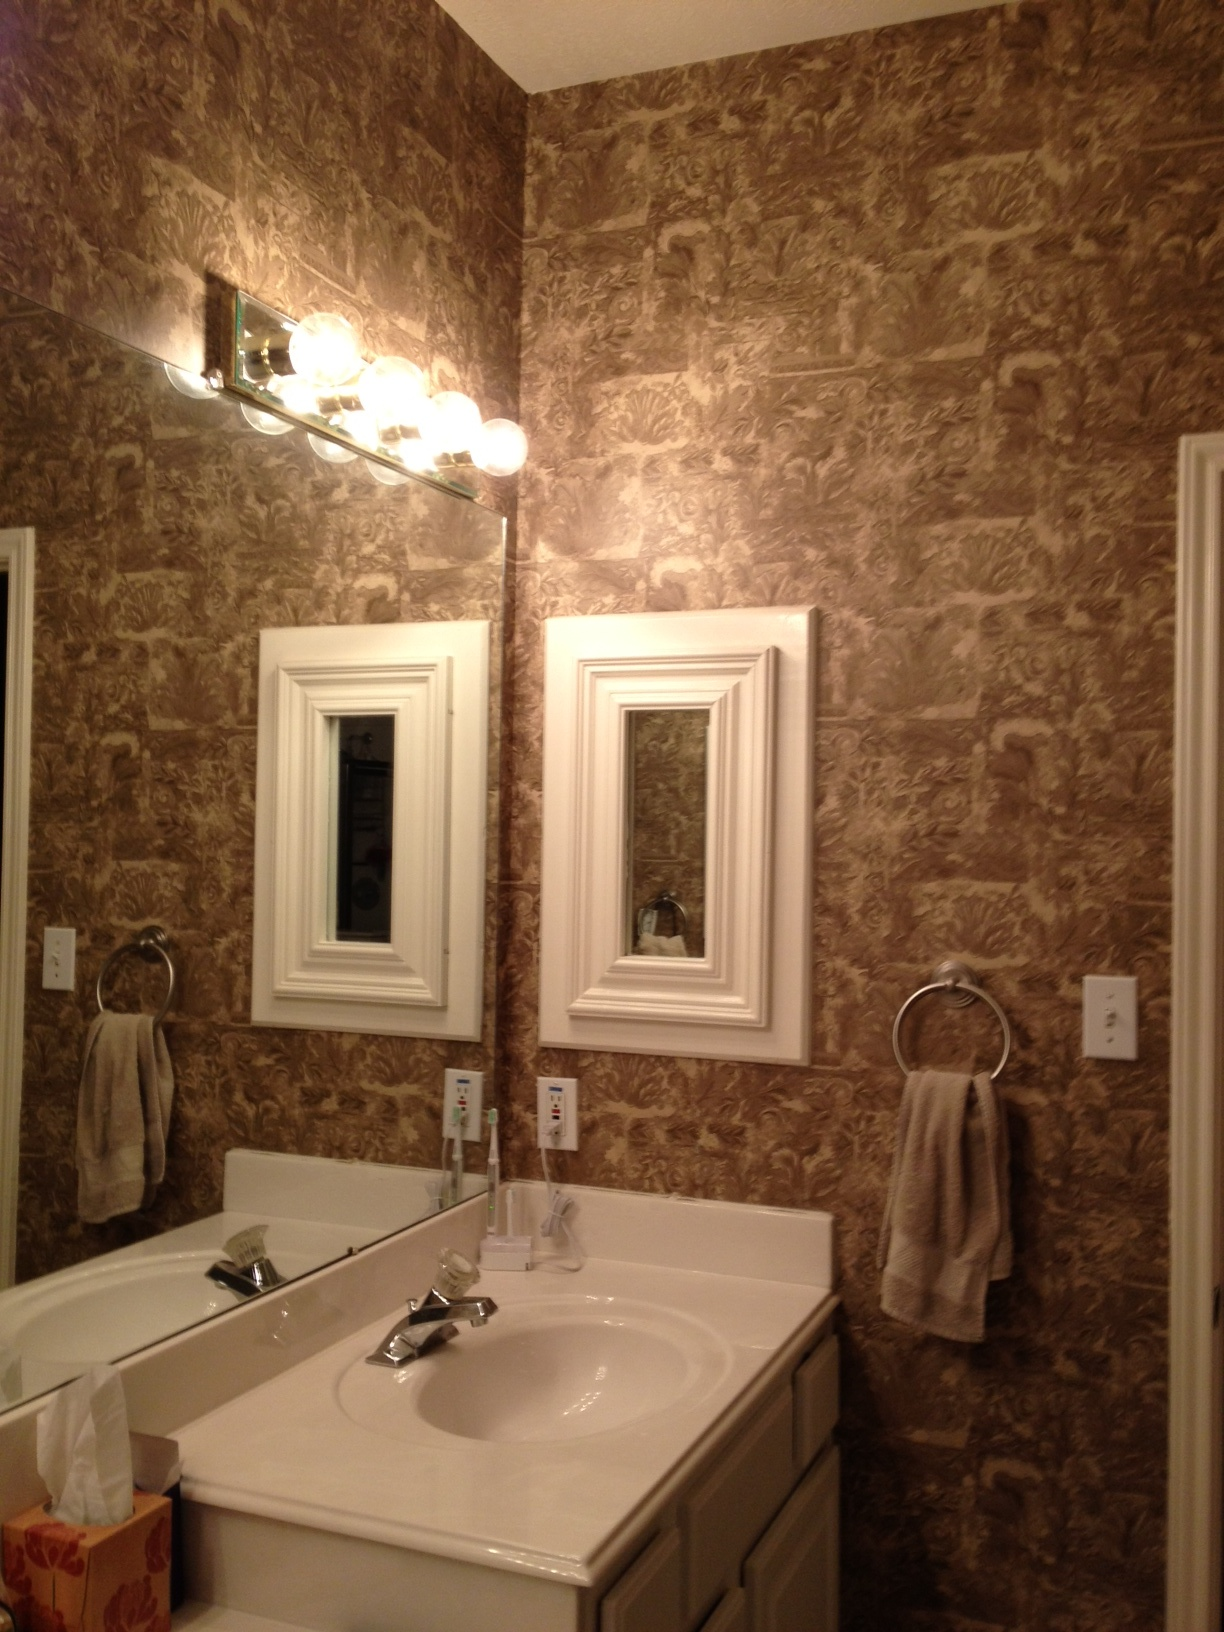 Master bathroom wallpaper HELP bath2jpg 1224x1632